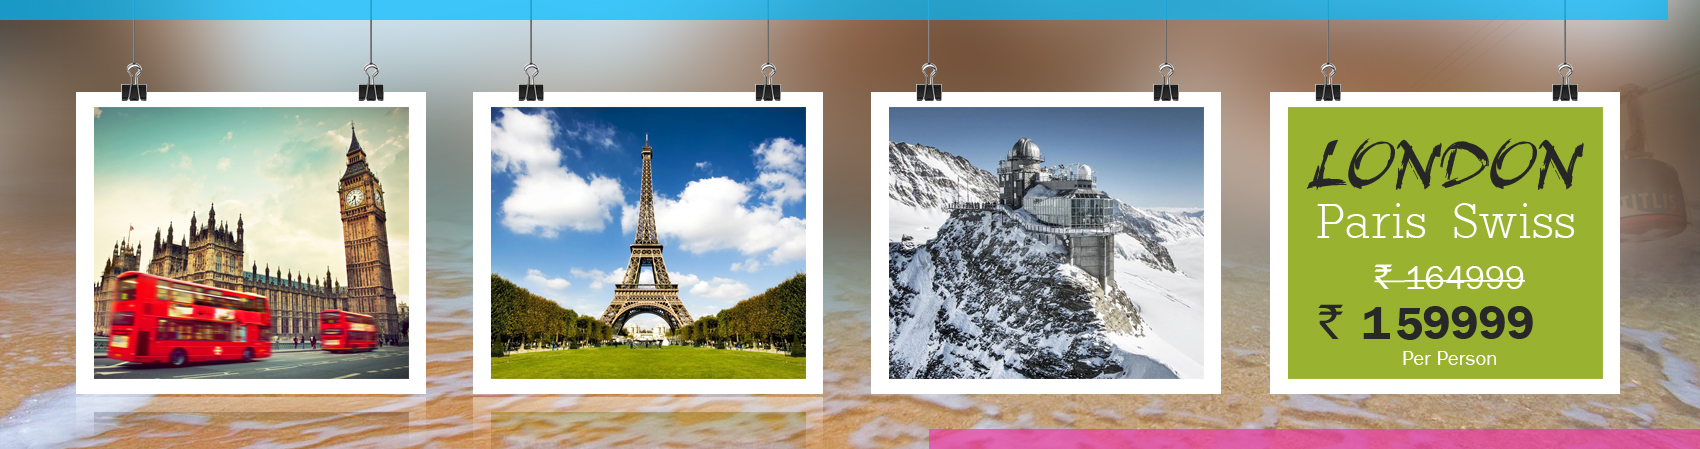 London Paris Swiss Tour Packages